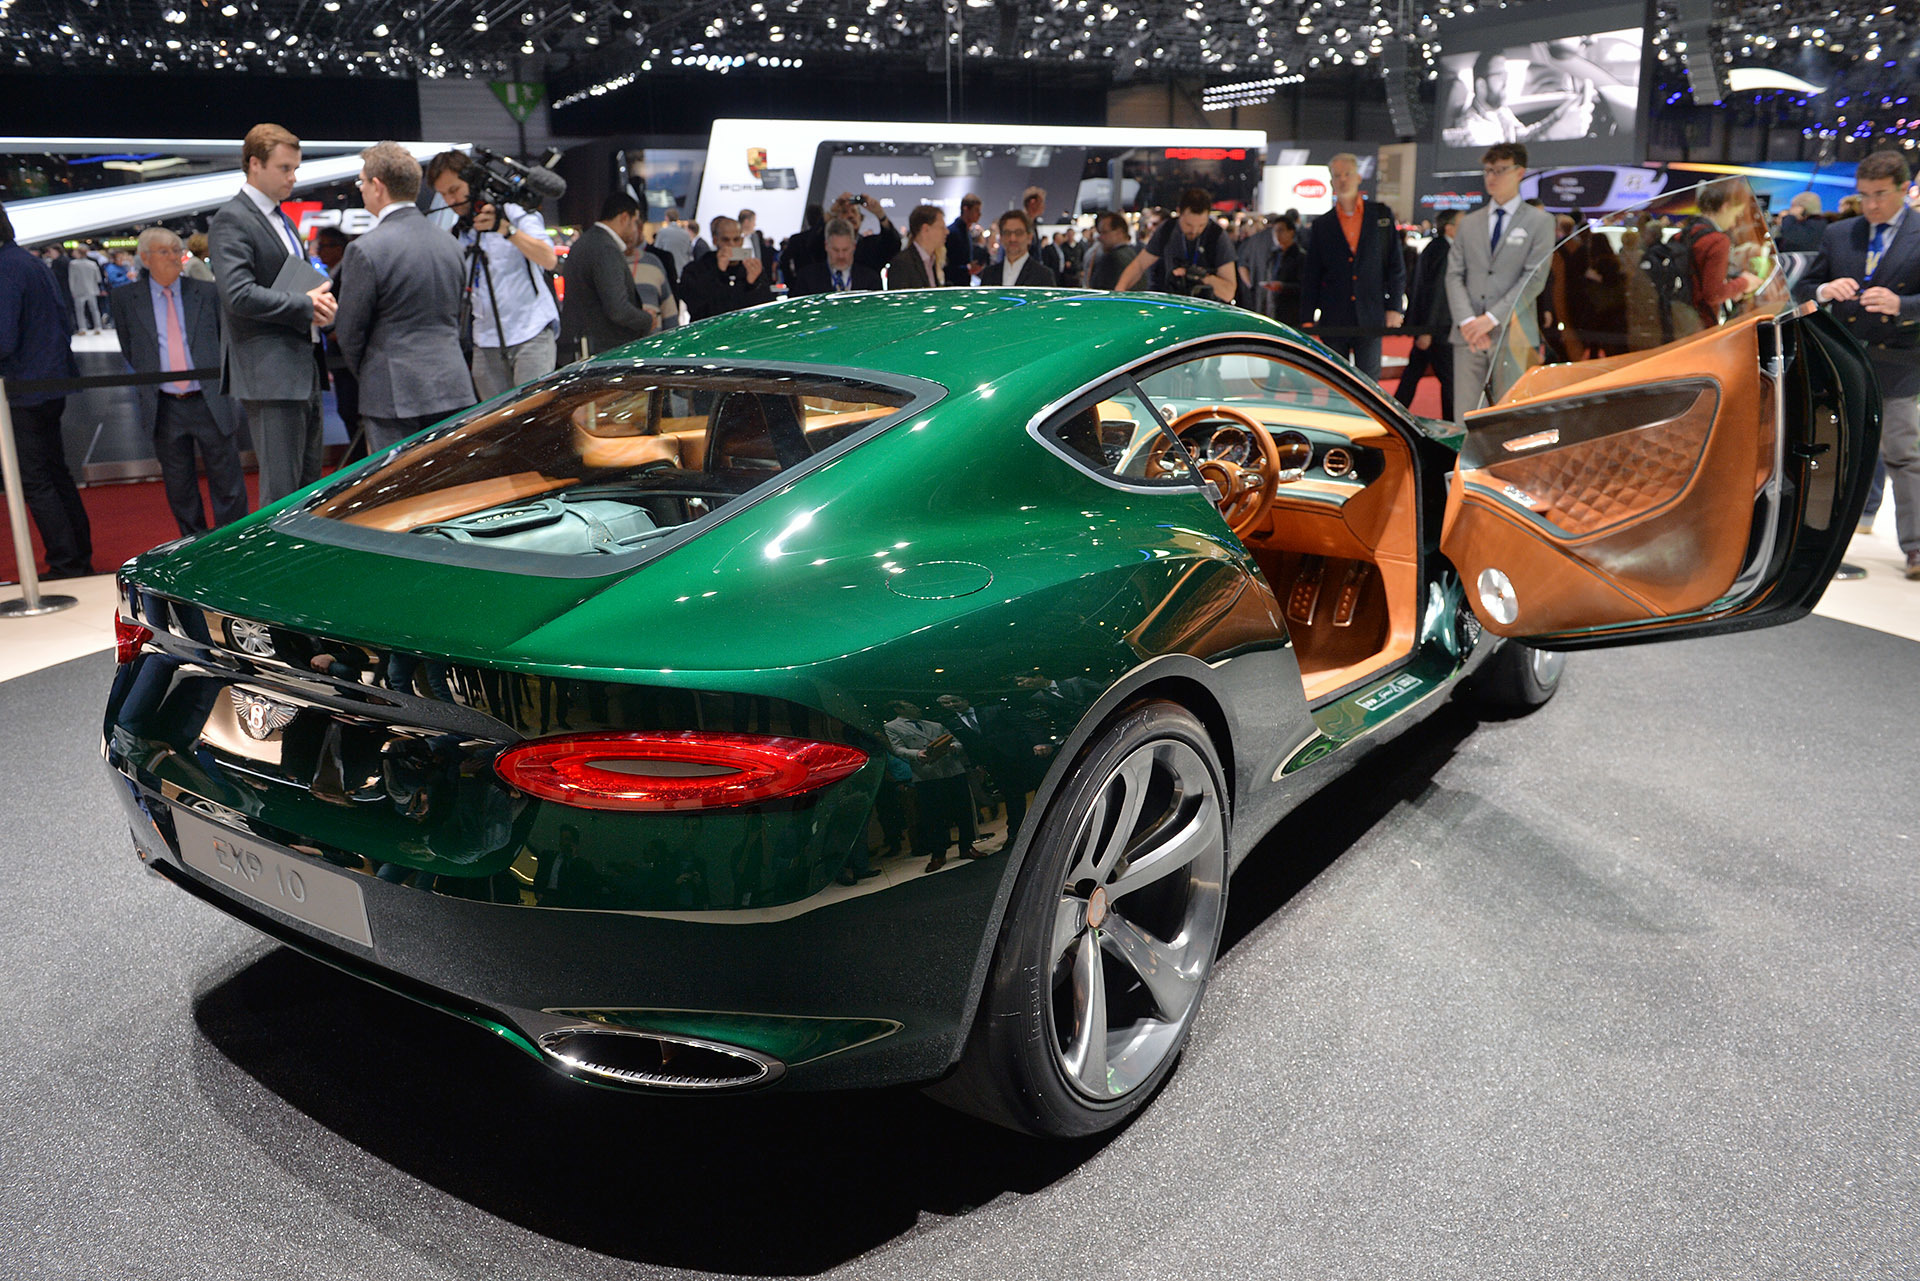 Bentley exp 10 speed 6 geneva 3